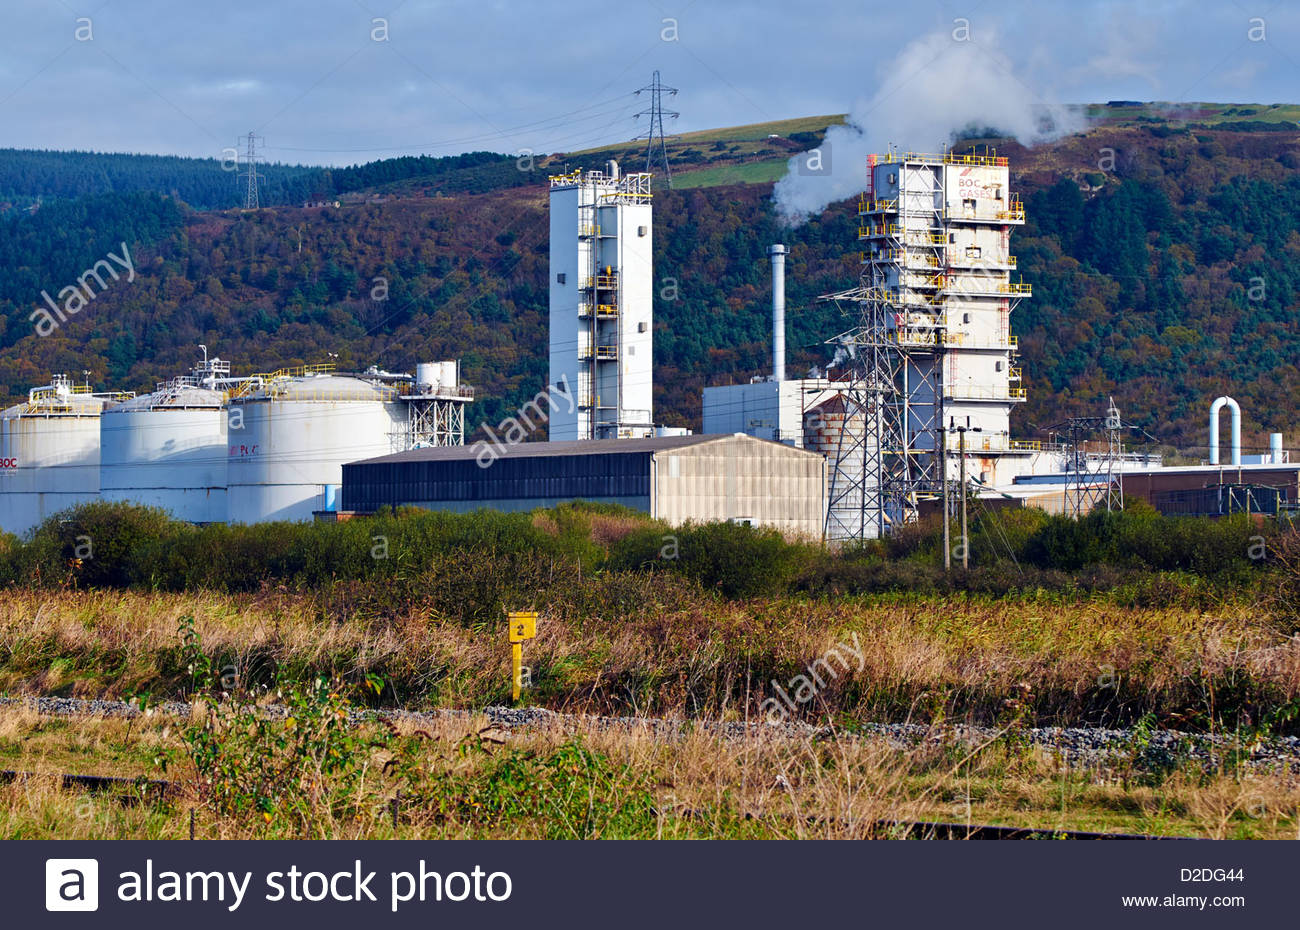 boc british oxygen gases industrial site in margam port talbot south wales - Stock Image